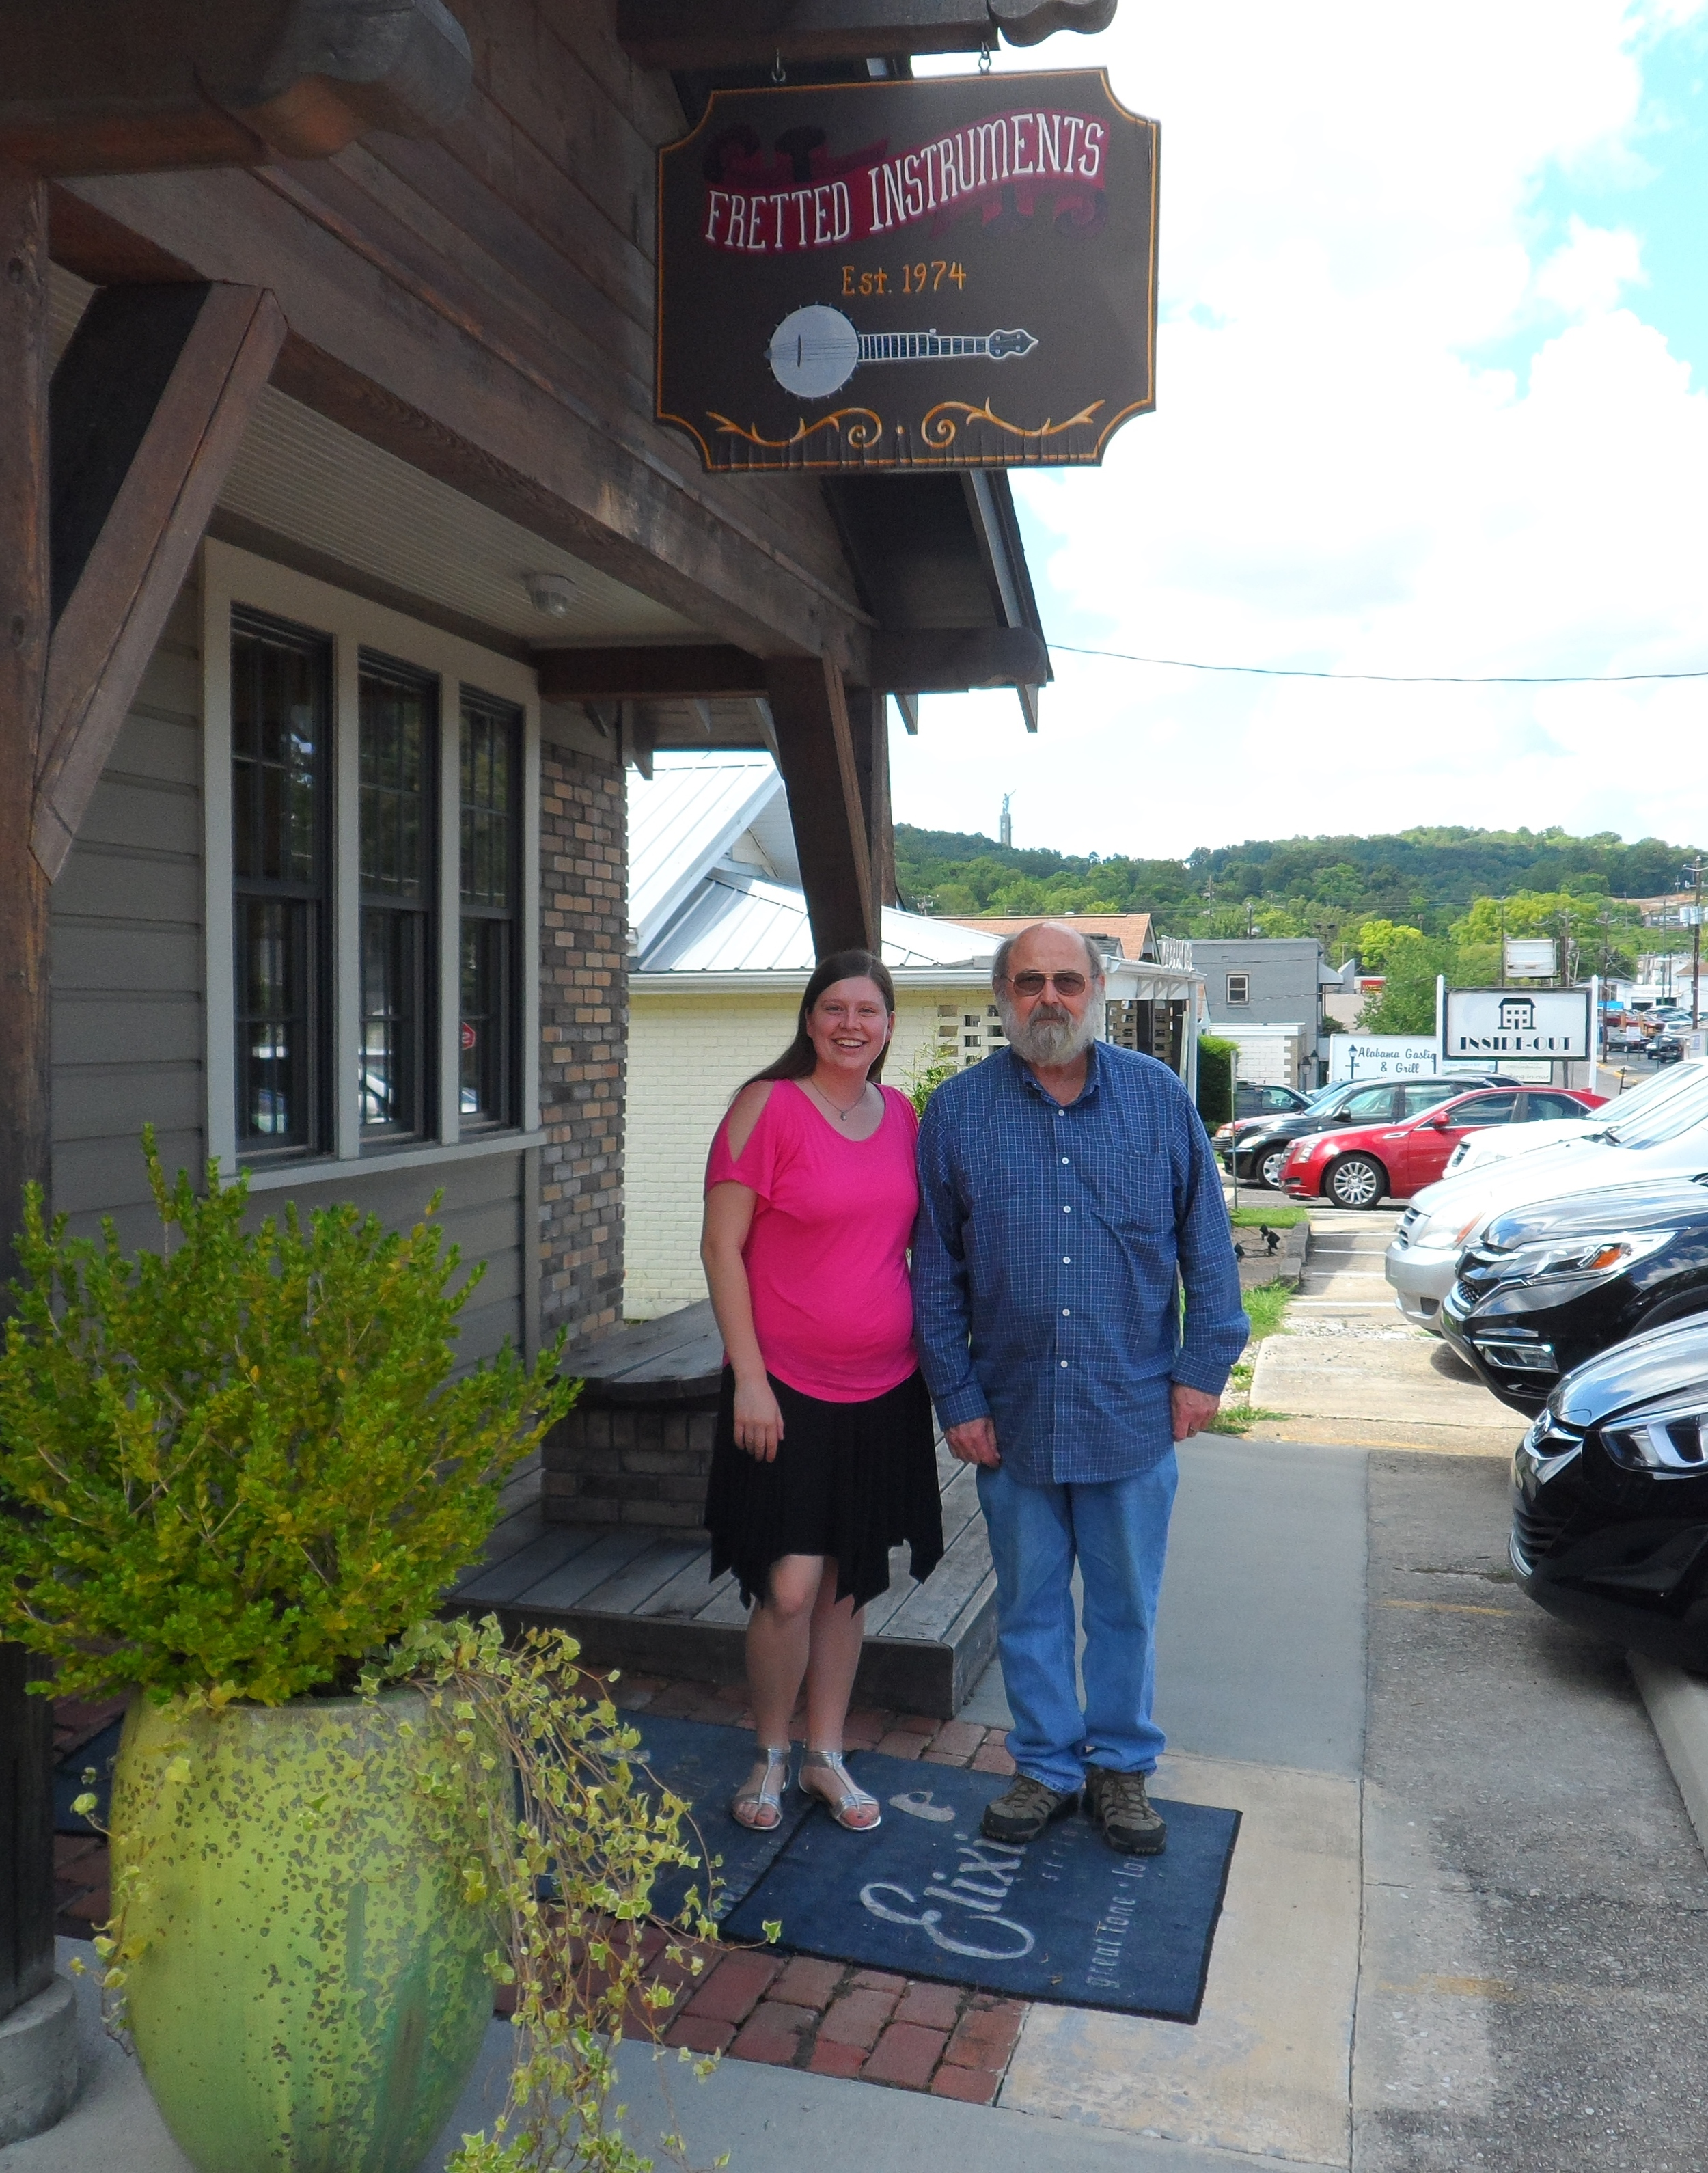 Whitley visits with Herb Trottman at Fretted Instruments in Birgmingham.